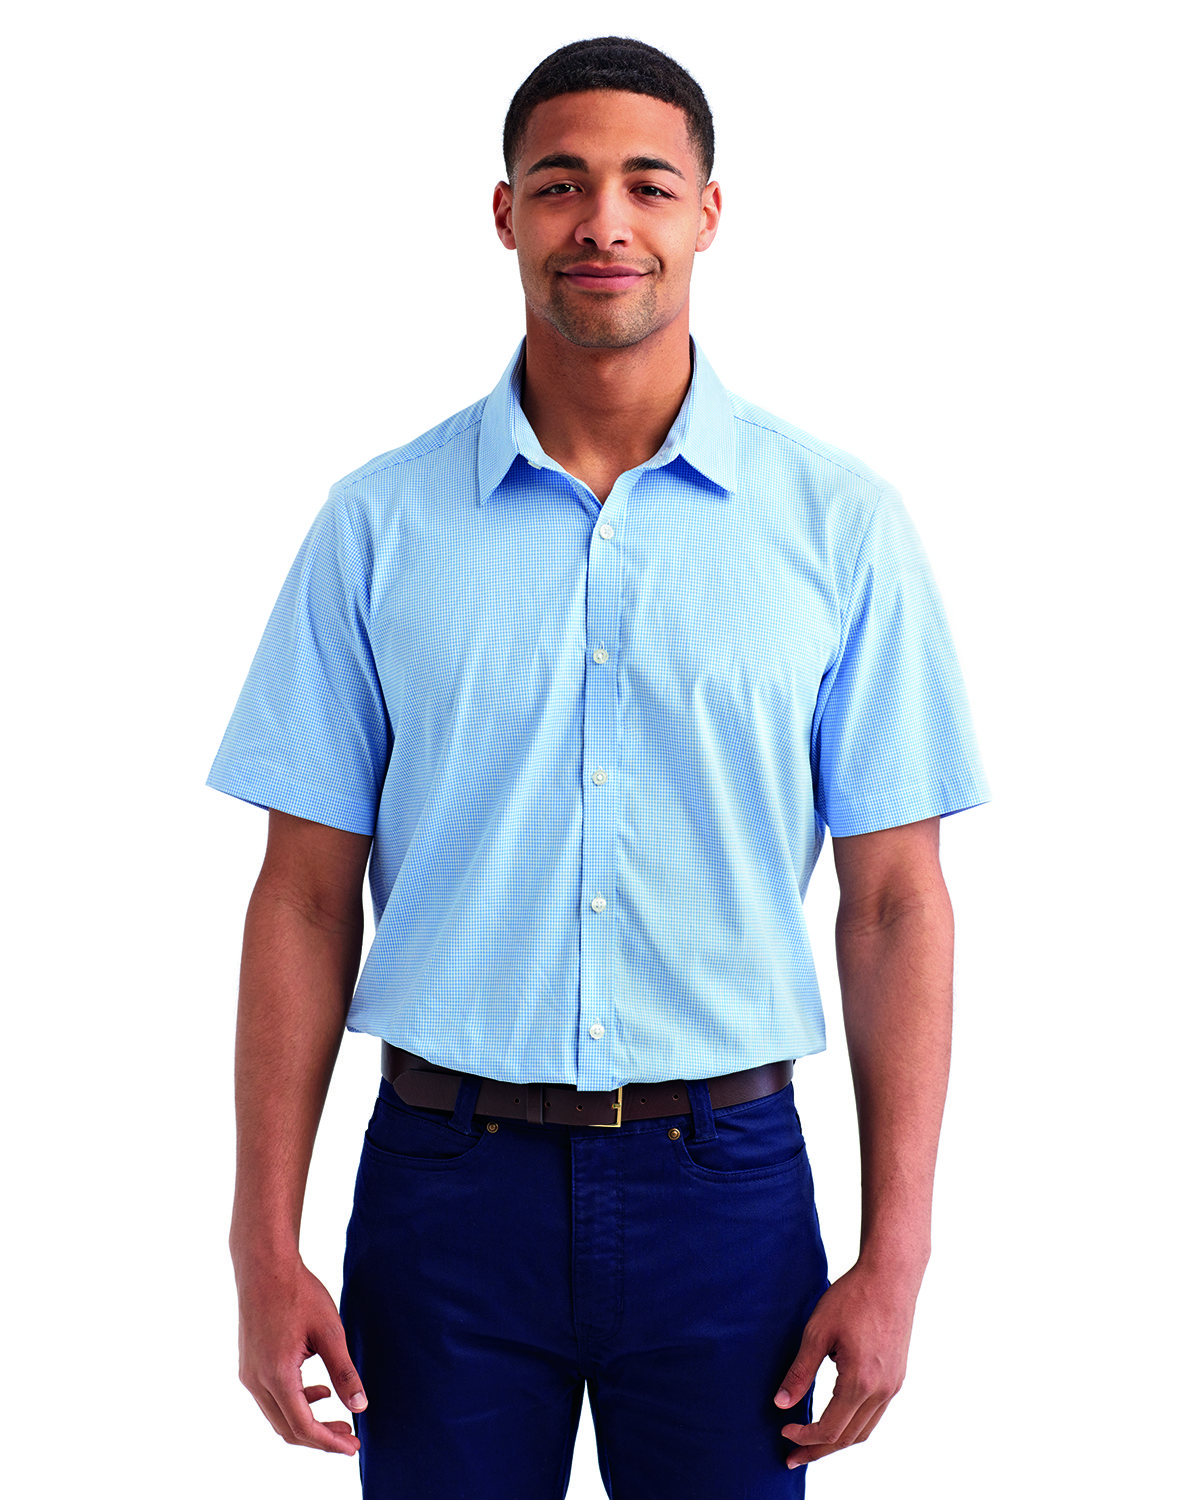 Artisan Collection by Reprime Mens Microcheck Gingham Short-Sleeve Cotton Shirt LT BLUE/ WHITE